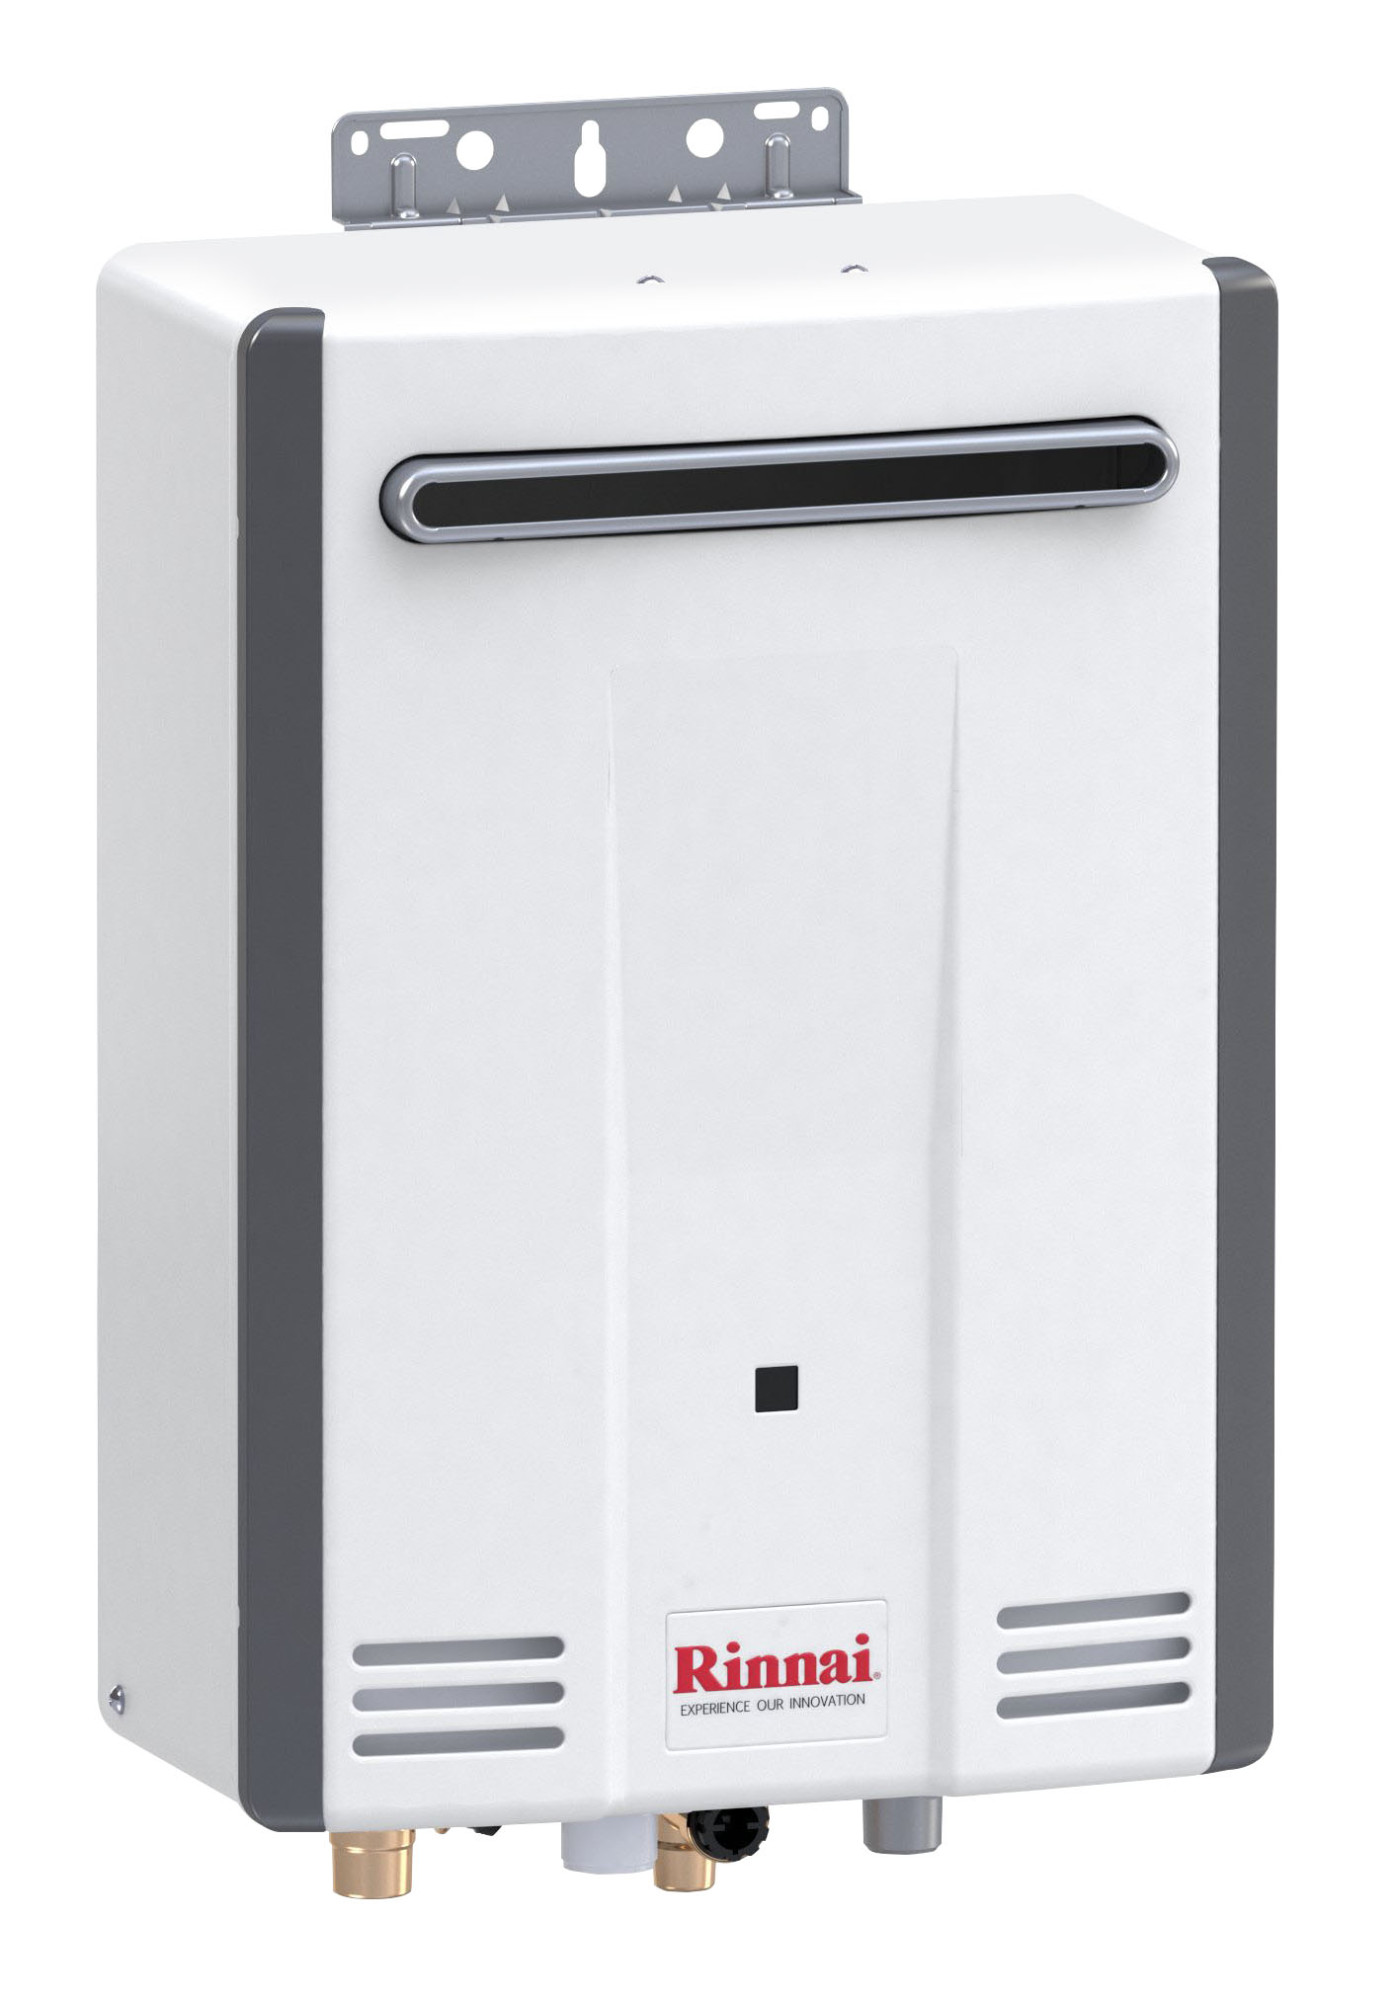 Rinnai V53delp Outdoor Whole House Liquid Propane Tankless